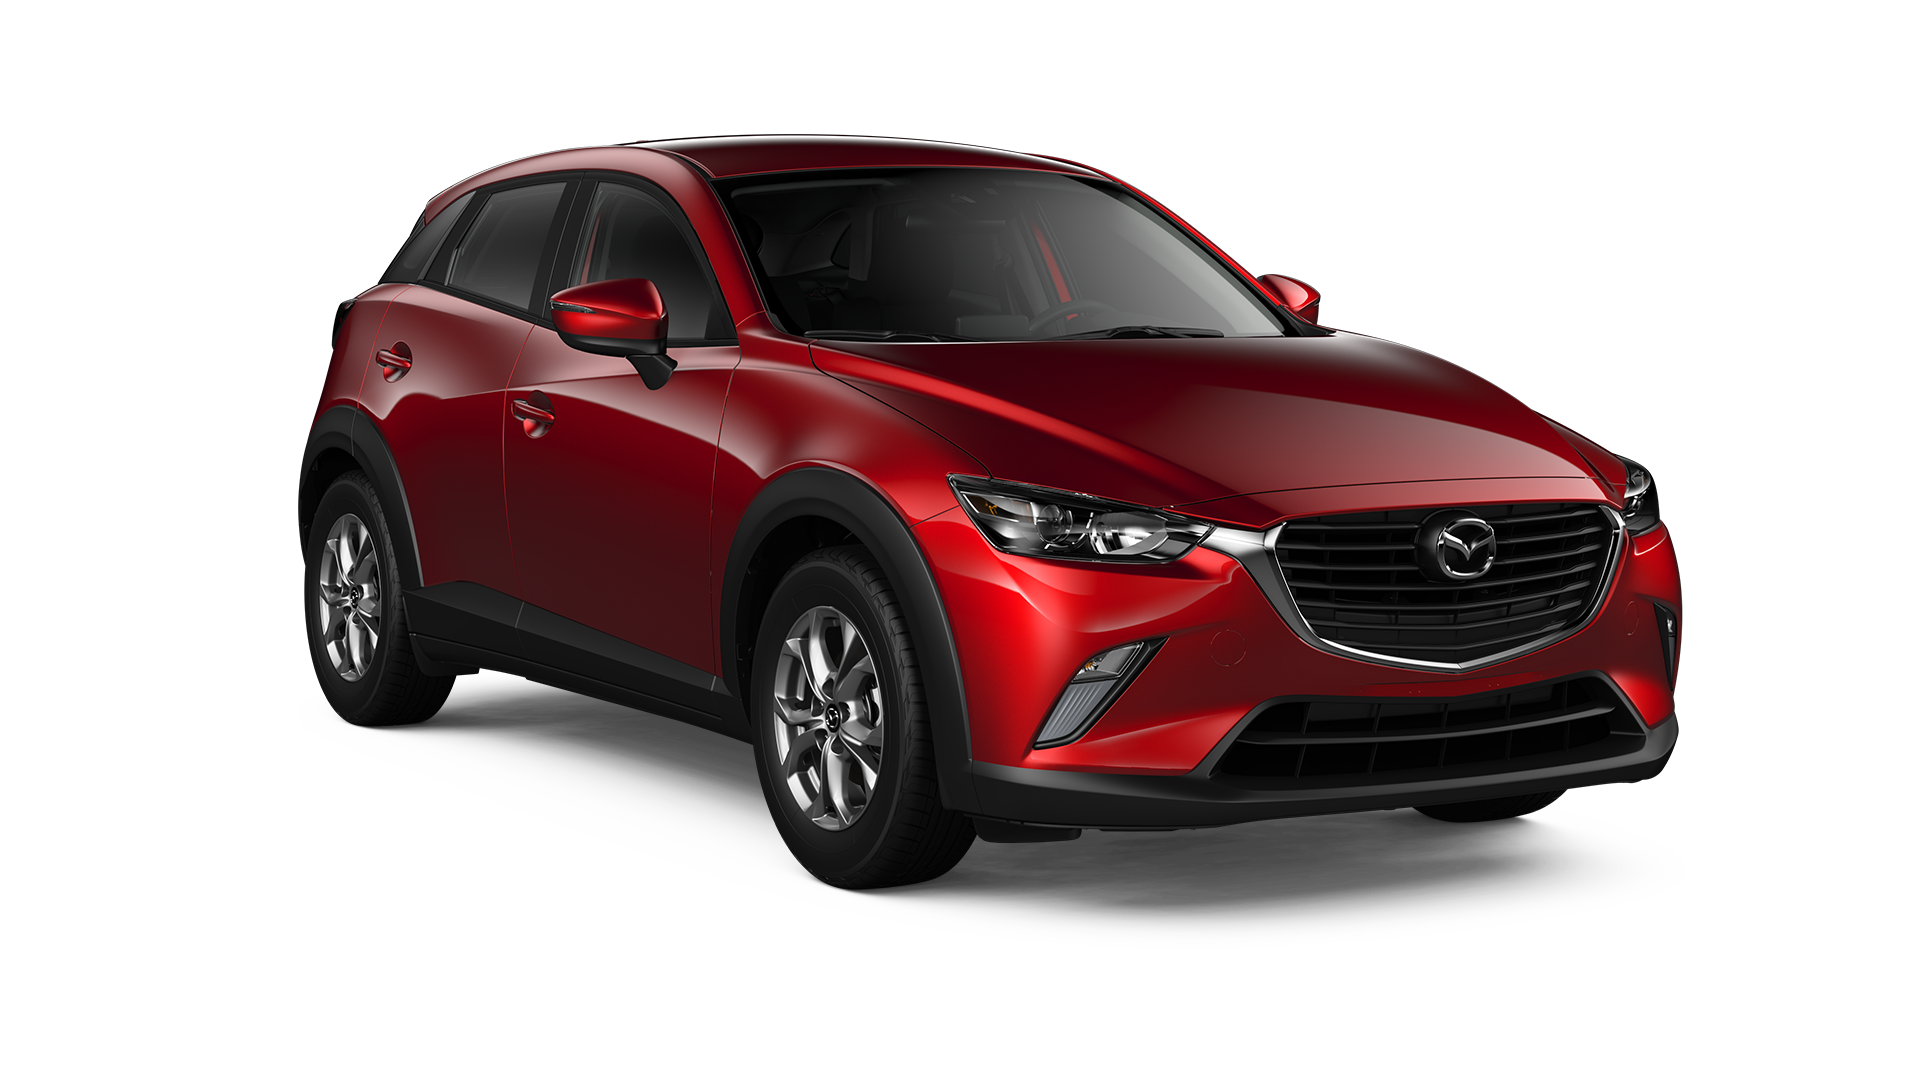 2018 cx 3 subcompact crossover suv mazda canada. Black Bedroom Furniture Sets. Home Design Ideas